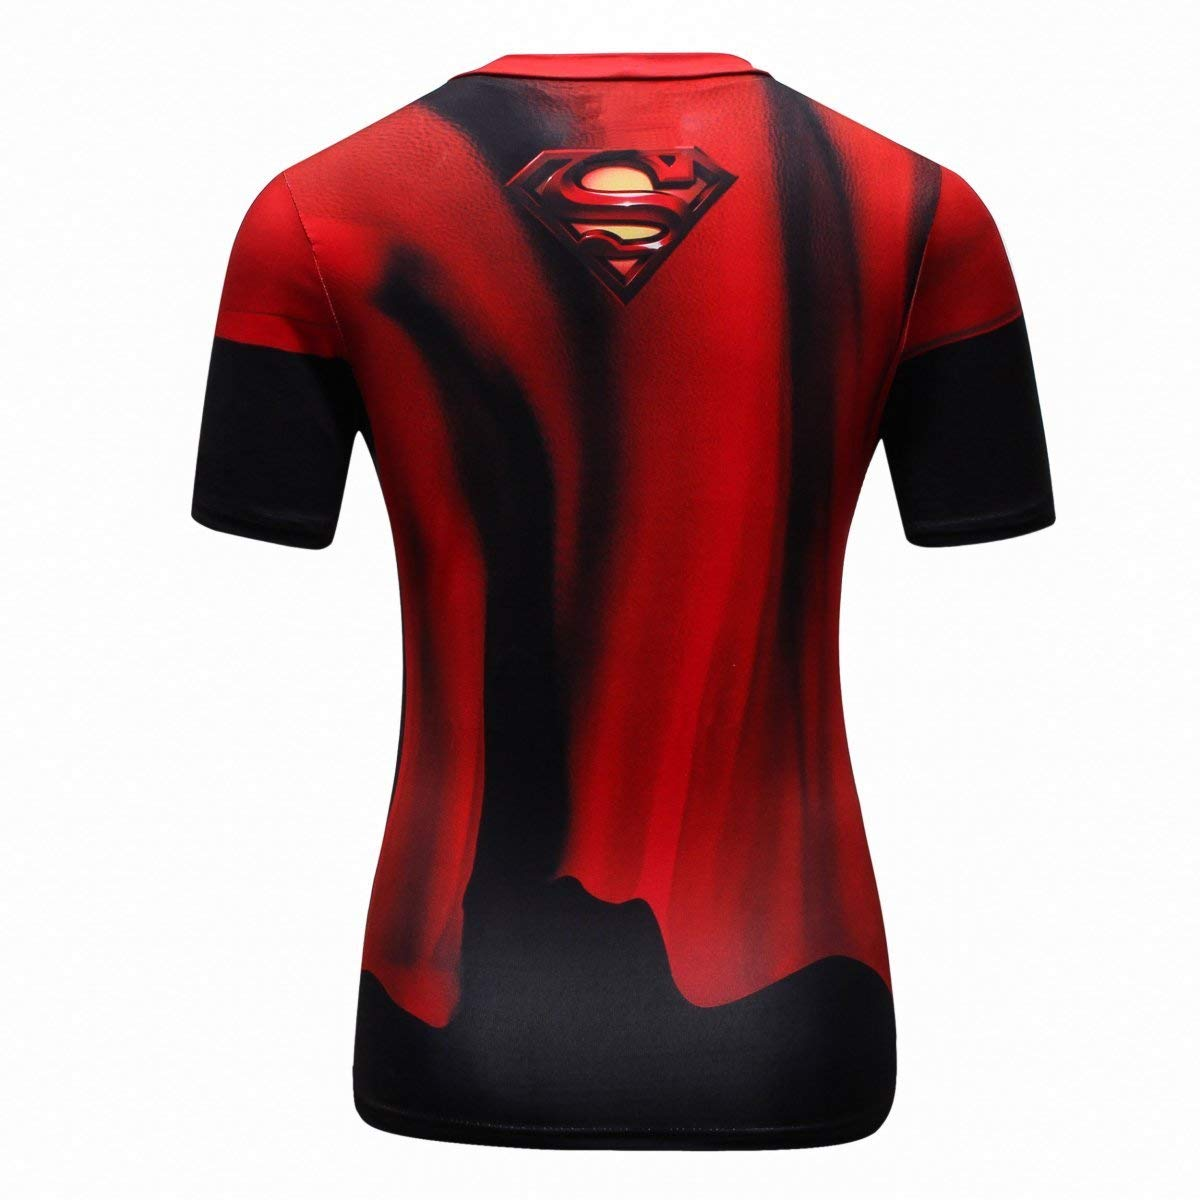 Superman compression shirt for women - back with cape